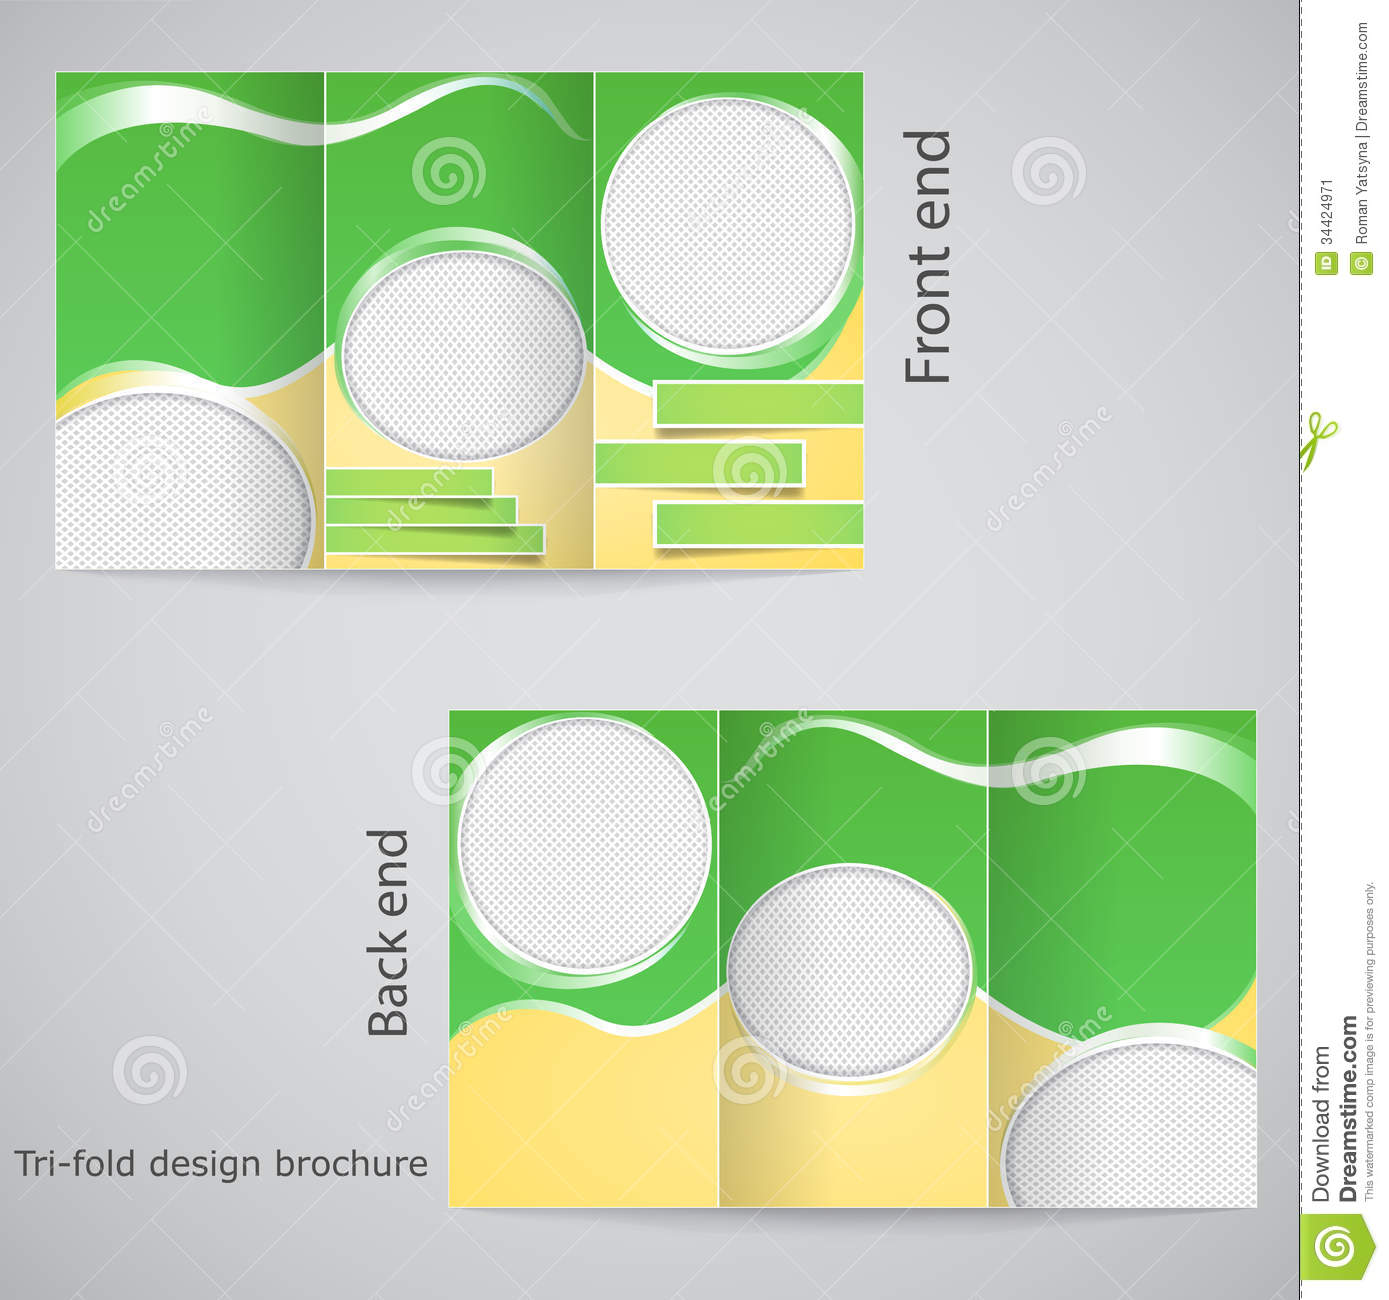 Tri fold brochure design stock vector illustration of for Brochures design templates